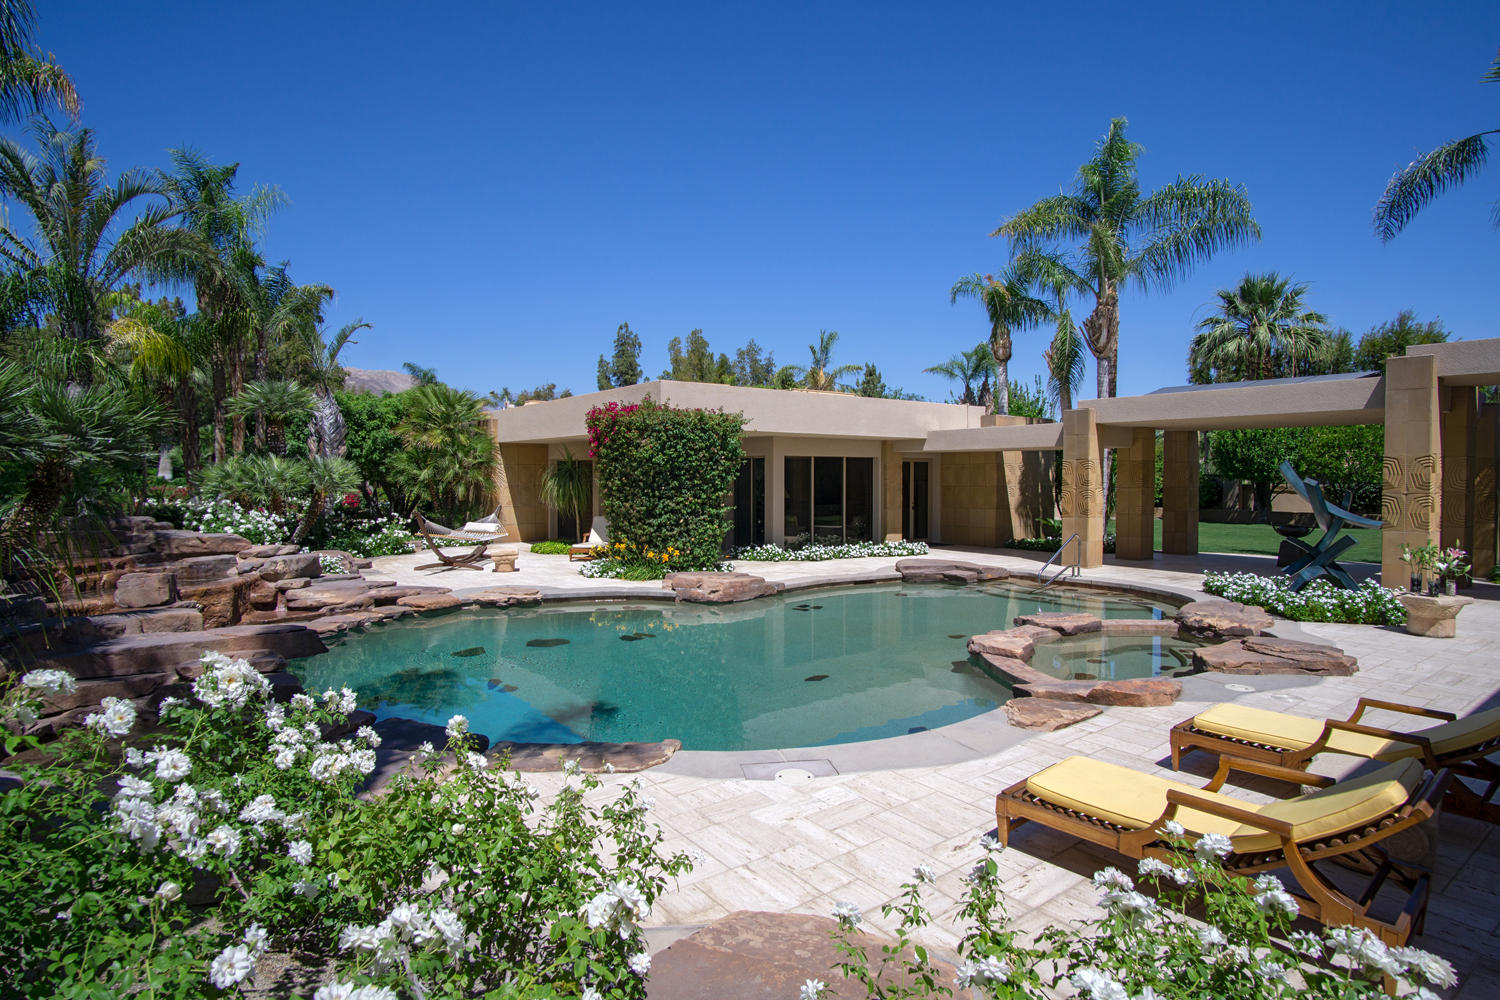 74325 Quail Lakes Drive, Indian Wells, California 92210, 5 Bedrooms Bedrooms, ,7 BathroomsBathrooms,Residential,For Sale,74325 Quail Lakes Drive,219036776